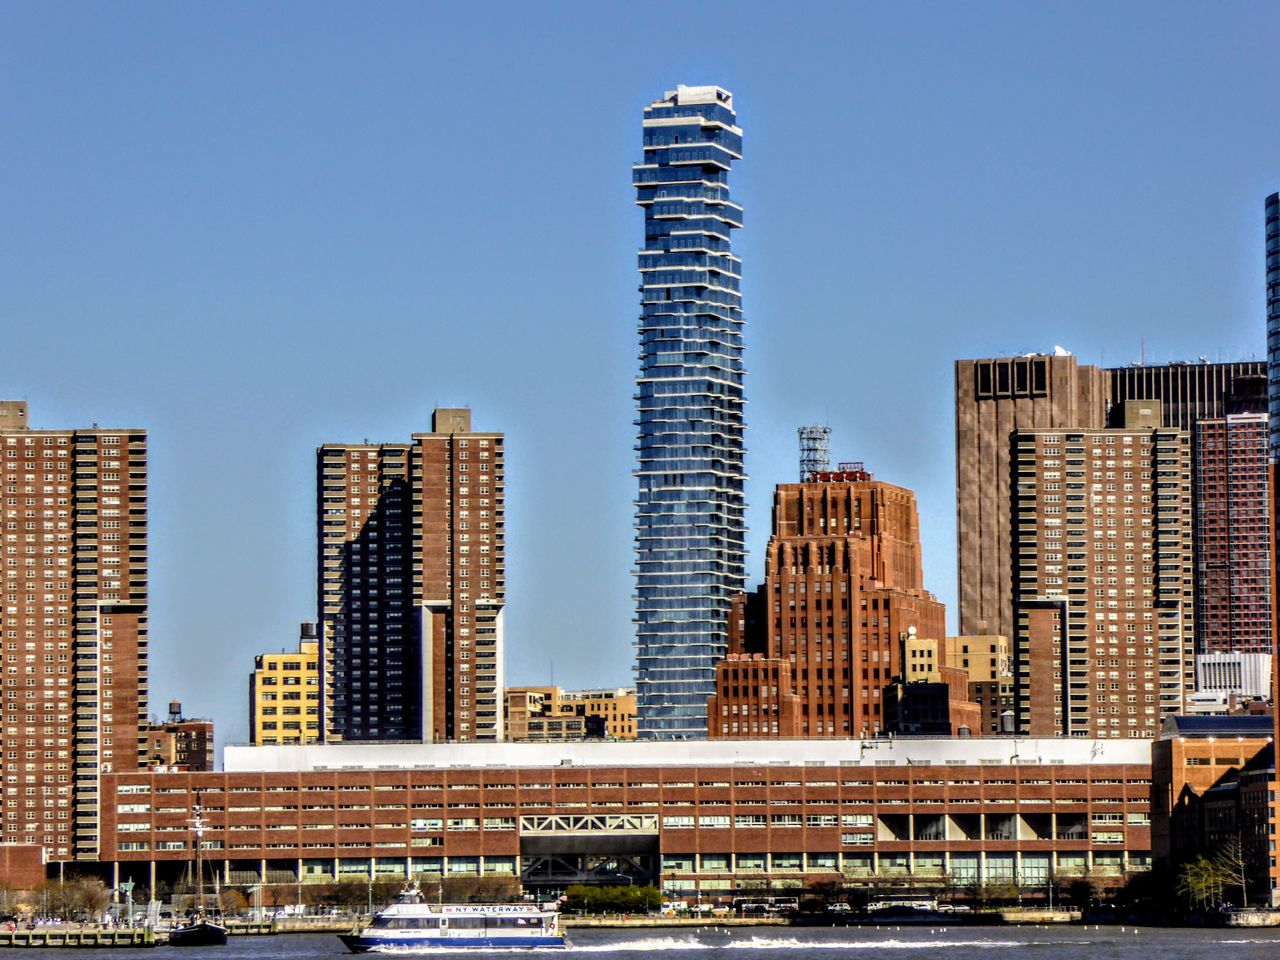 architecture, skyscraper, building exterior, built structure, tall - high, city, modern, outdoors, cityscape, day, no people, bridge - man made structure, clear sky, tall, urban skyline, sky